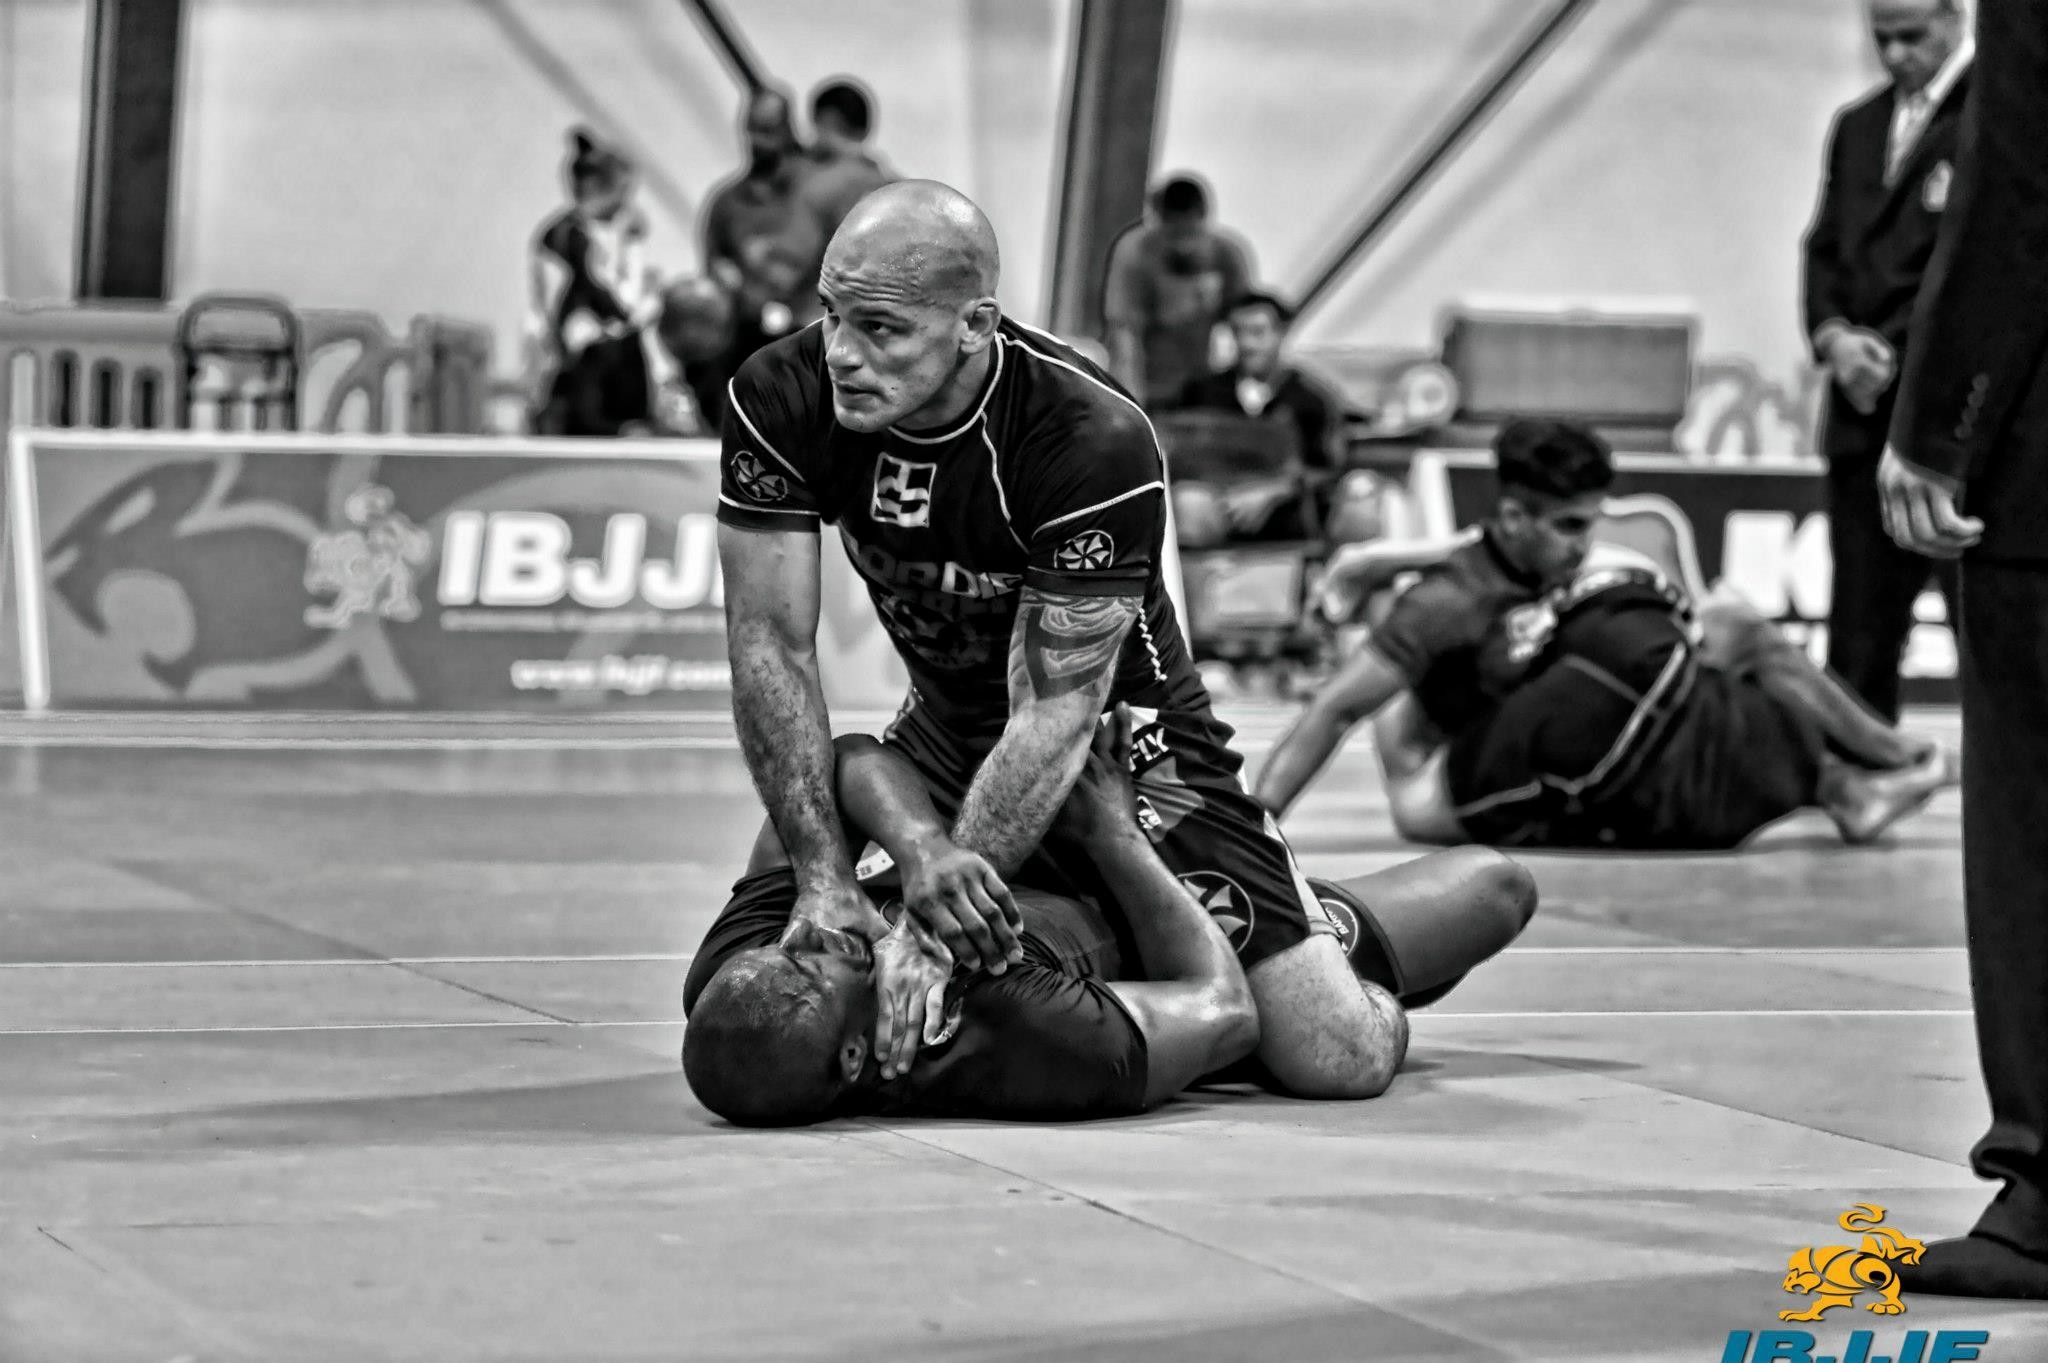 Wallpapers For Brazilian Jiu Jitsu Fighter Wallpaper | www ...